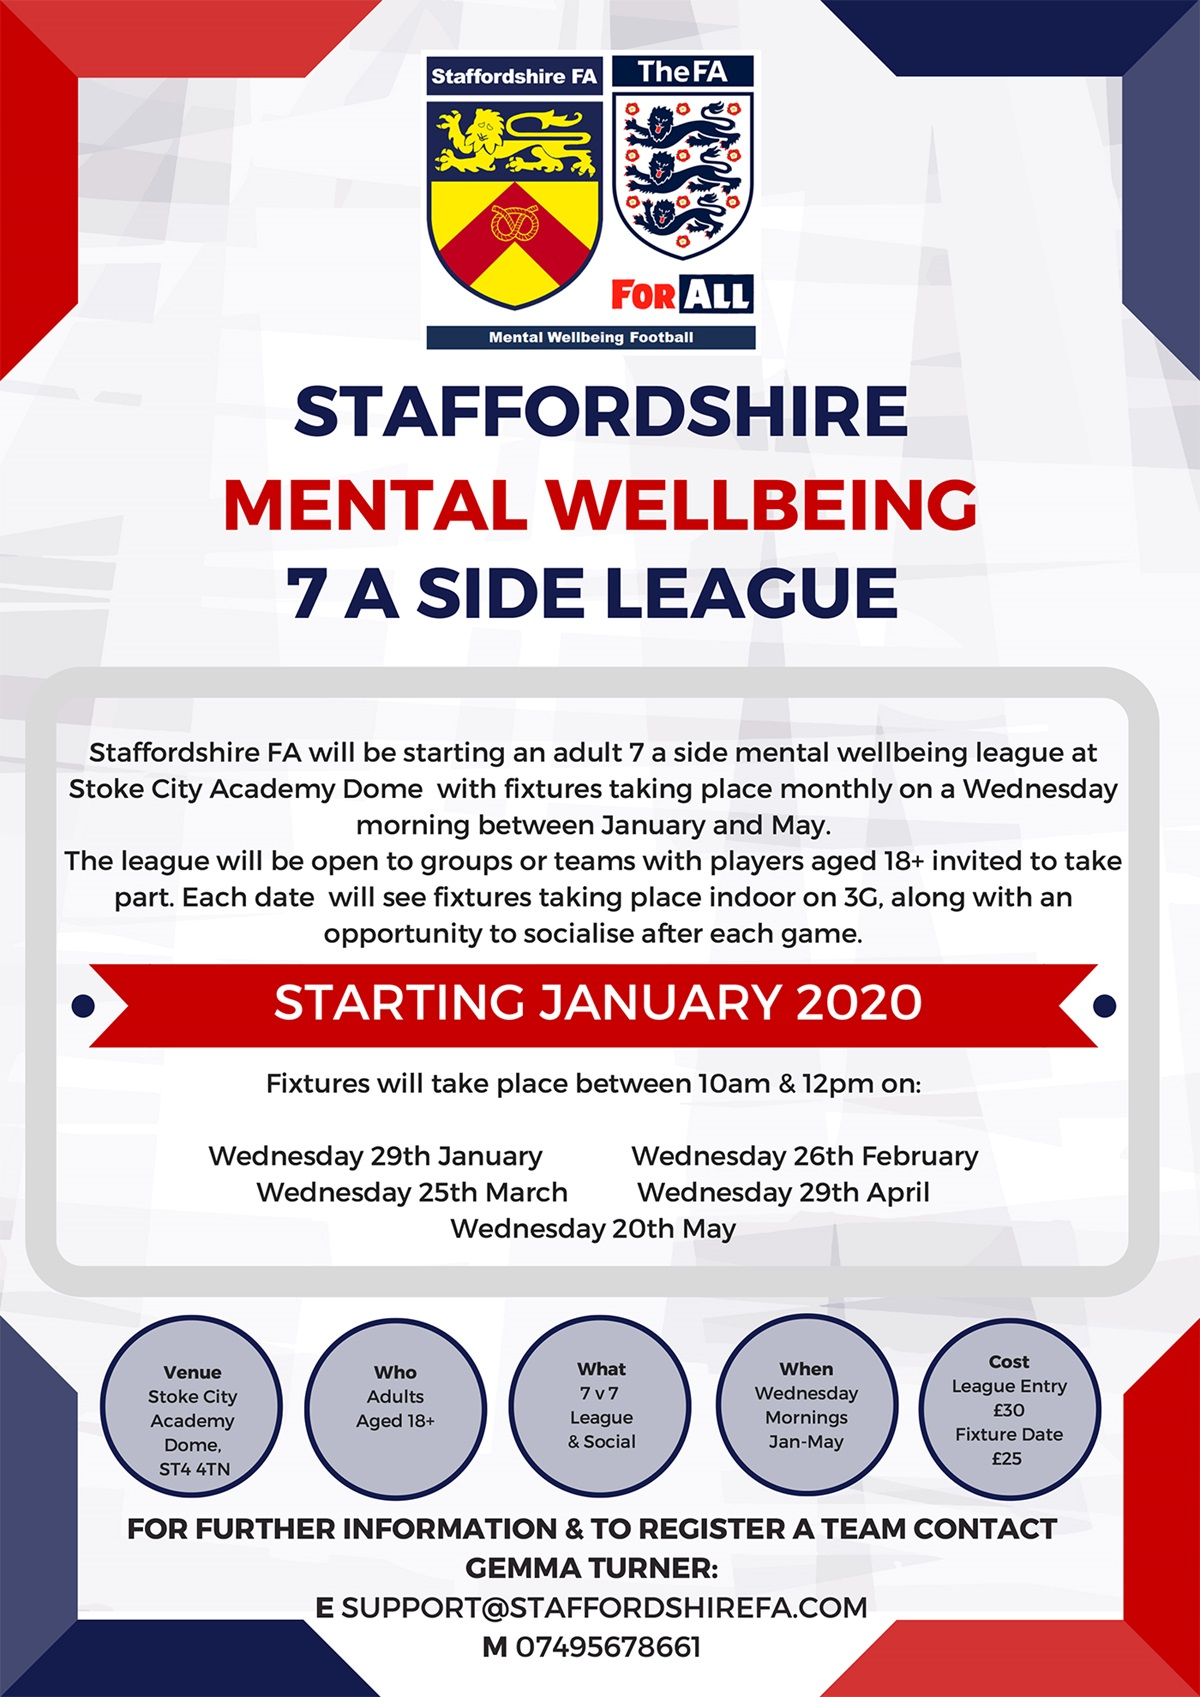 Mental Wellbeing League